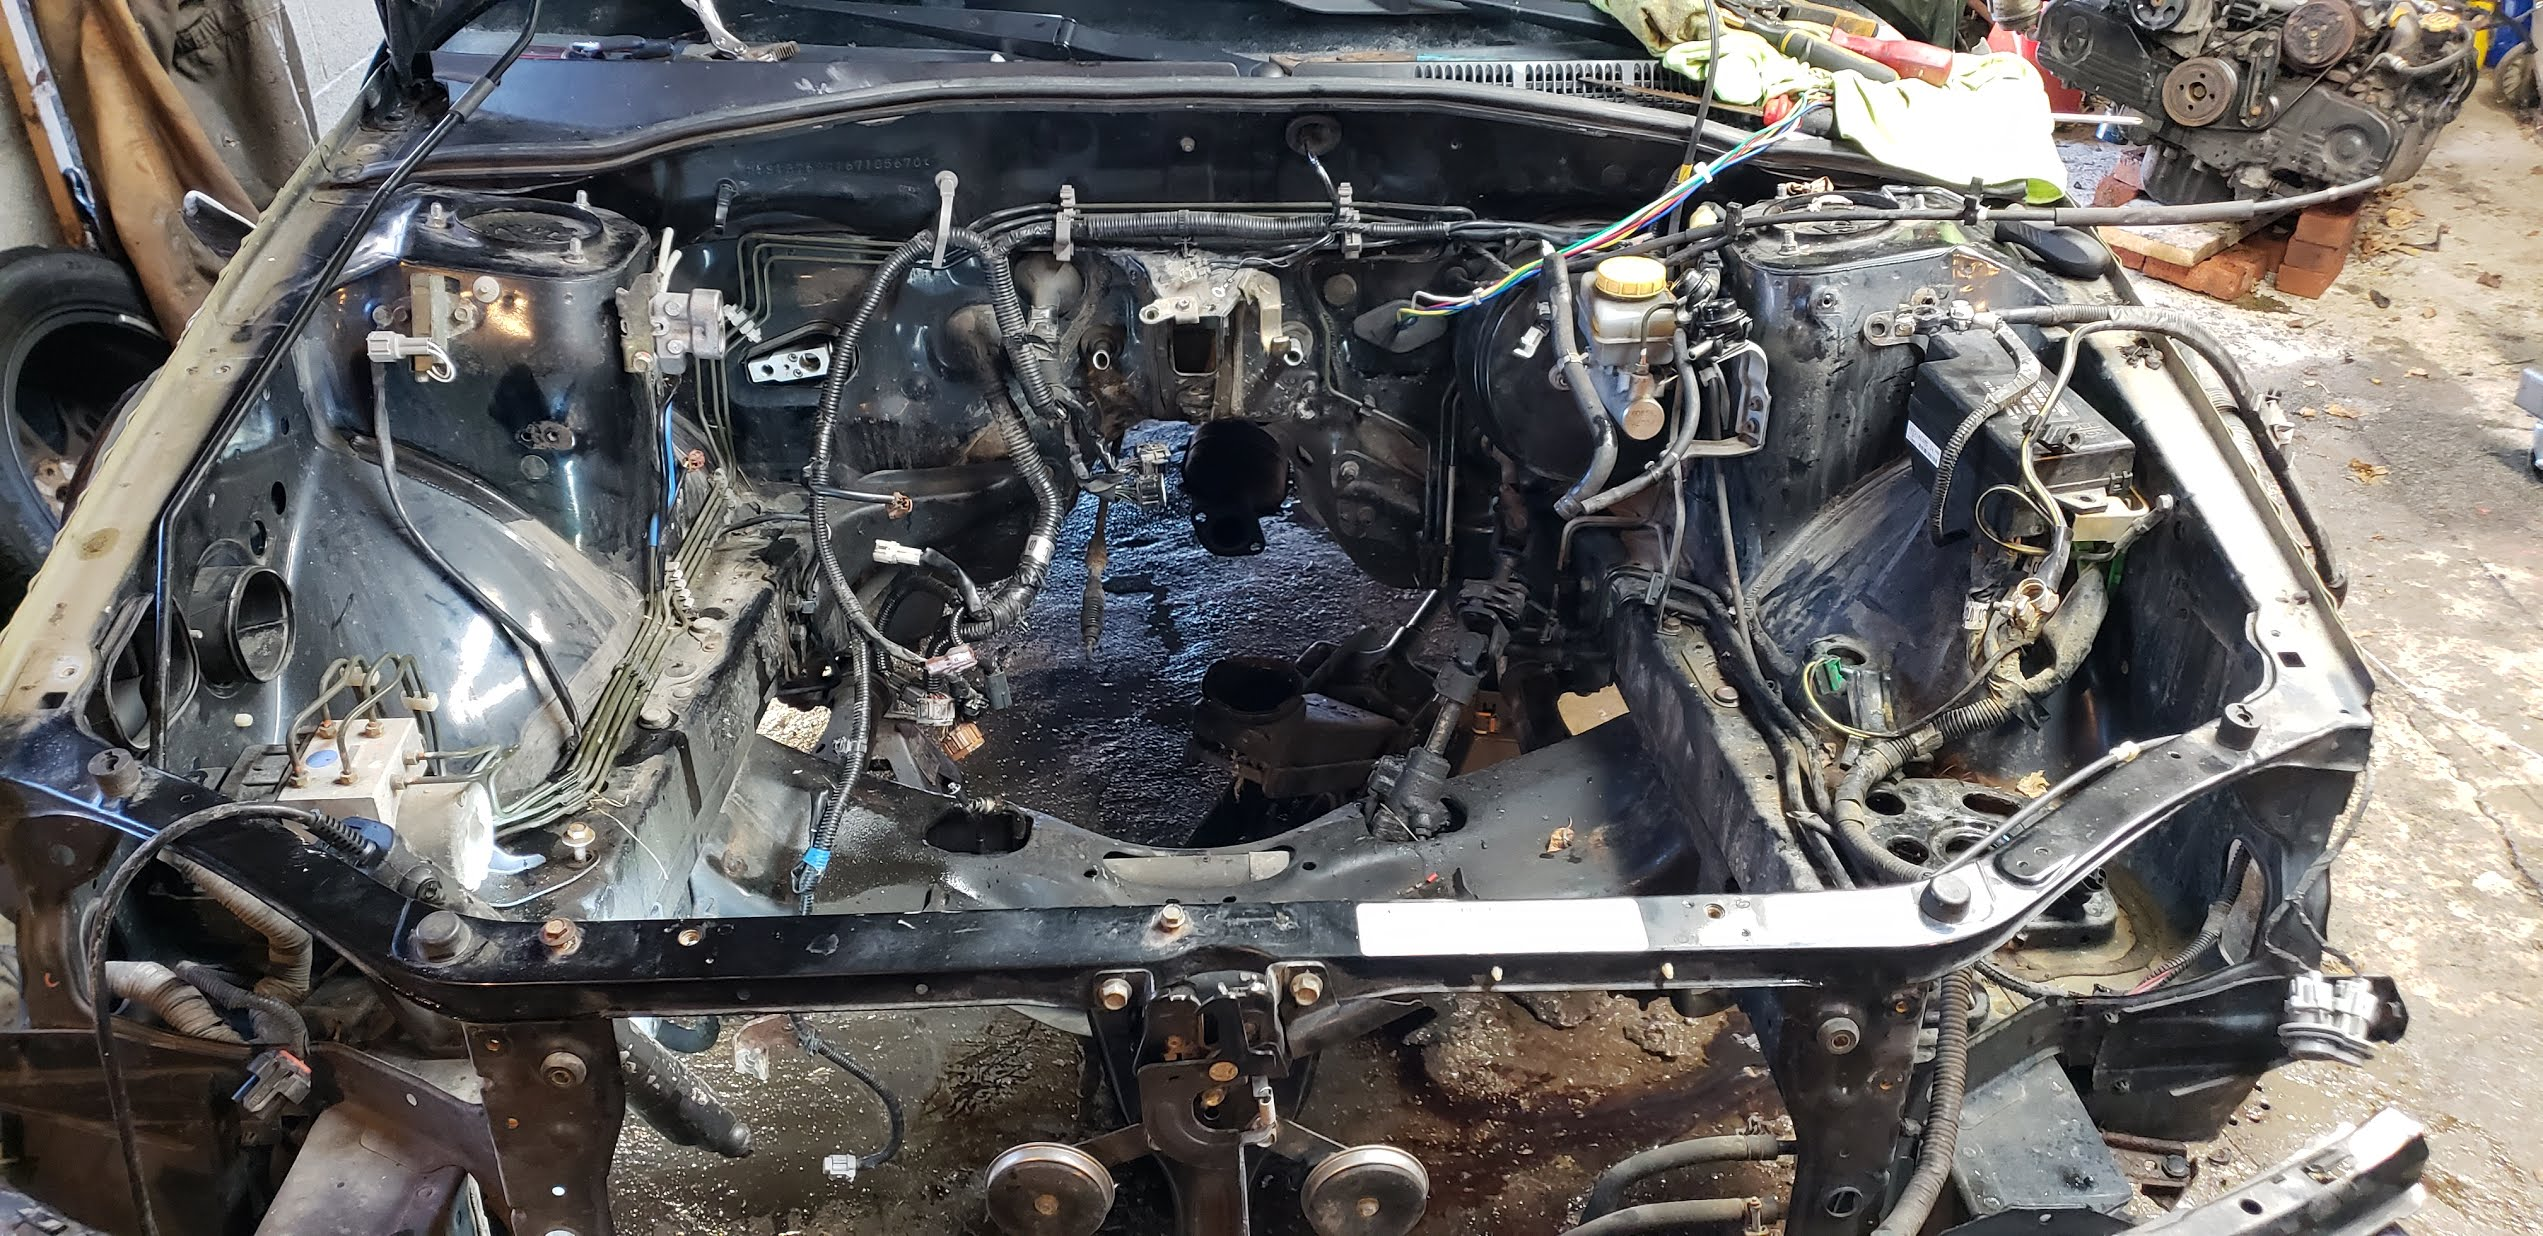 Outback VDC H6 Swap to Baja - Page 15 - Subaru Outback